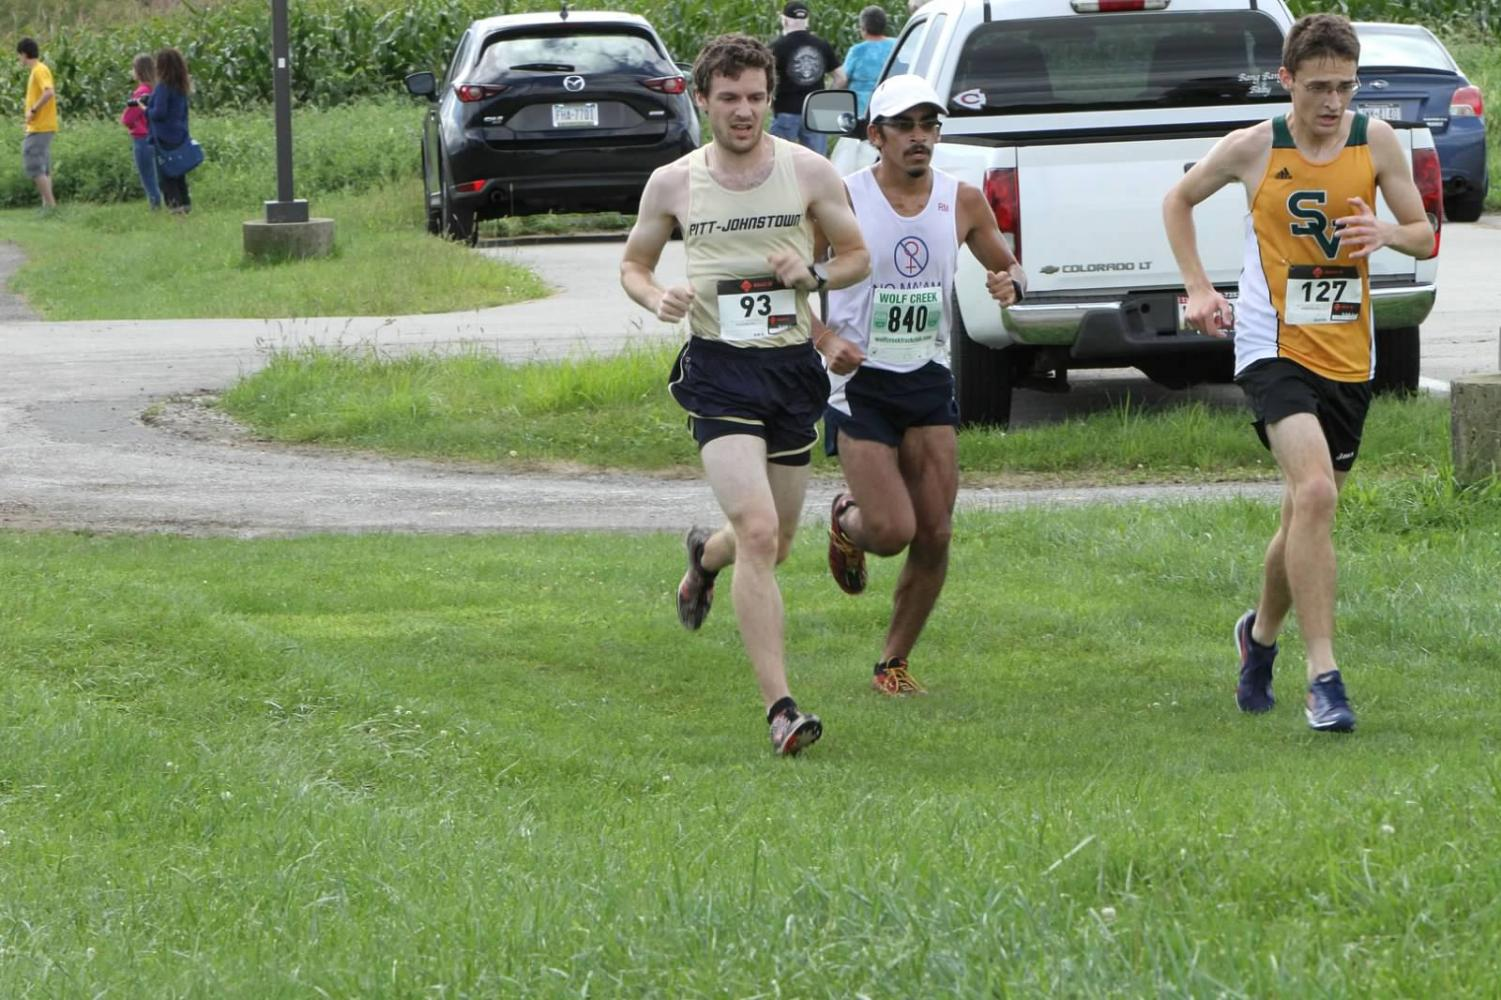 Junior Connor Harriman (left) runs in the St. Vincent's Invitational on Sep. 15 in Latrobe, Pa.